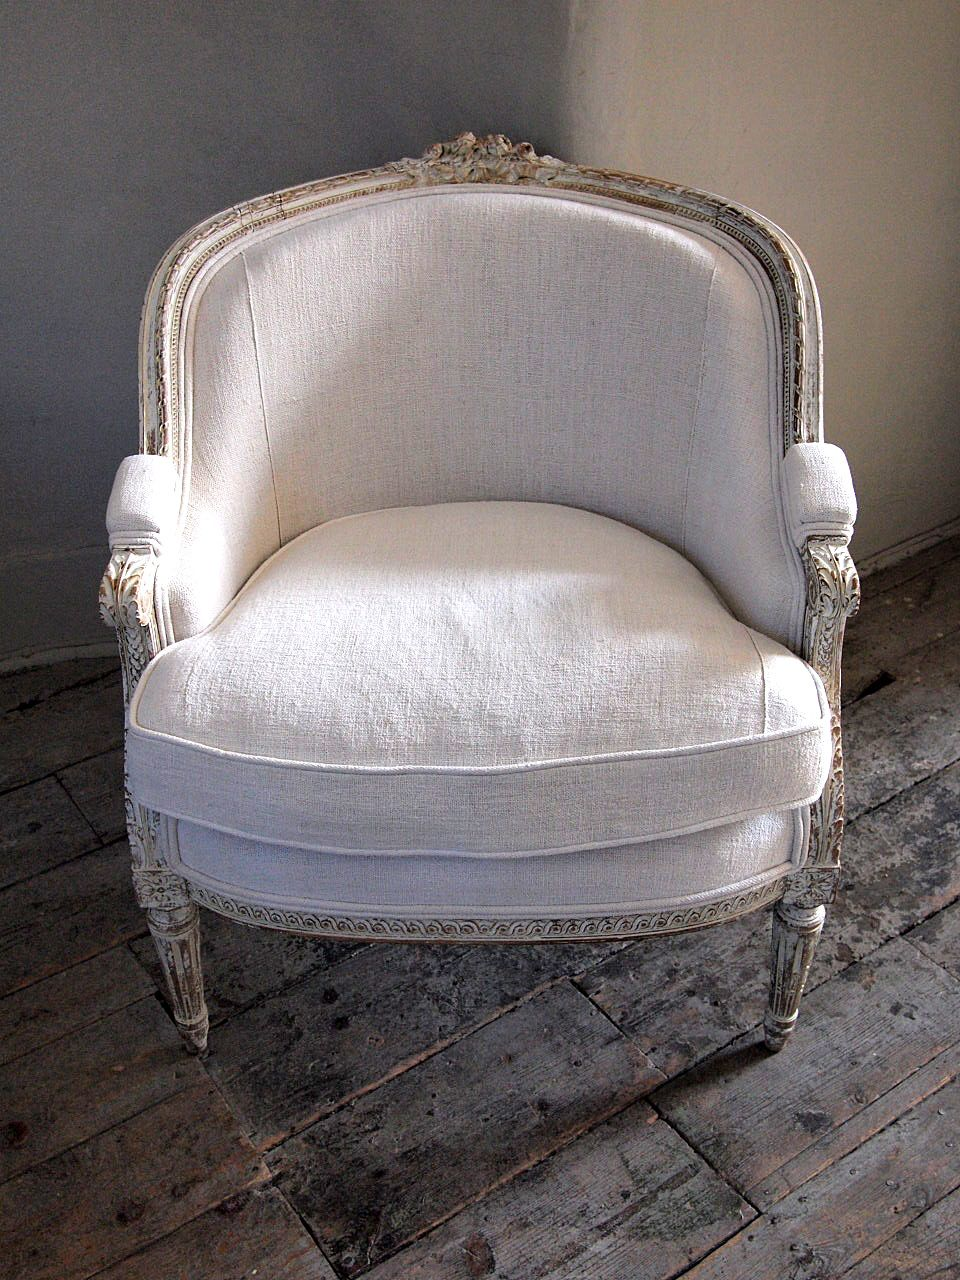 French Antique Tub Chair - French Antique Tub Chair Farmhouse French Chairs, Furniture